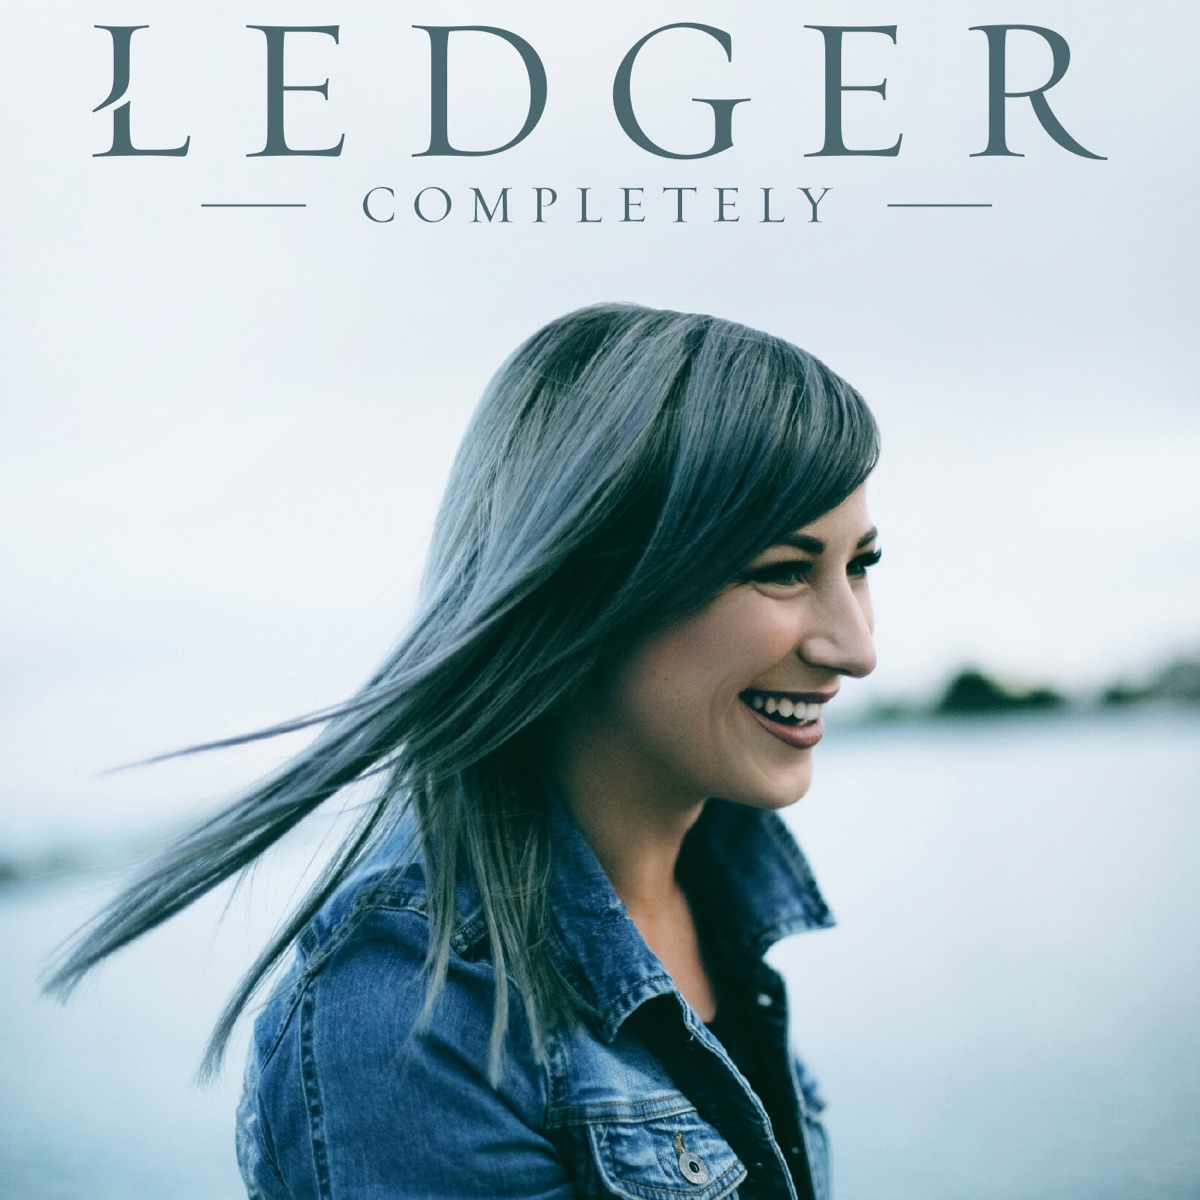 Completely - Single LEDGER CD cover